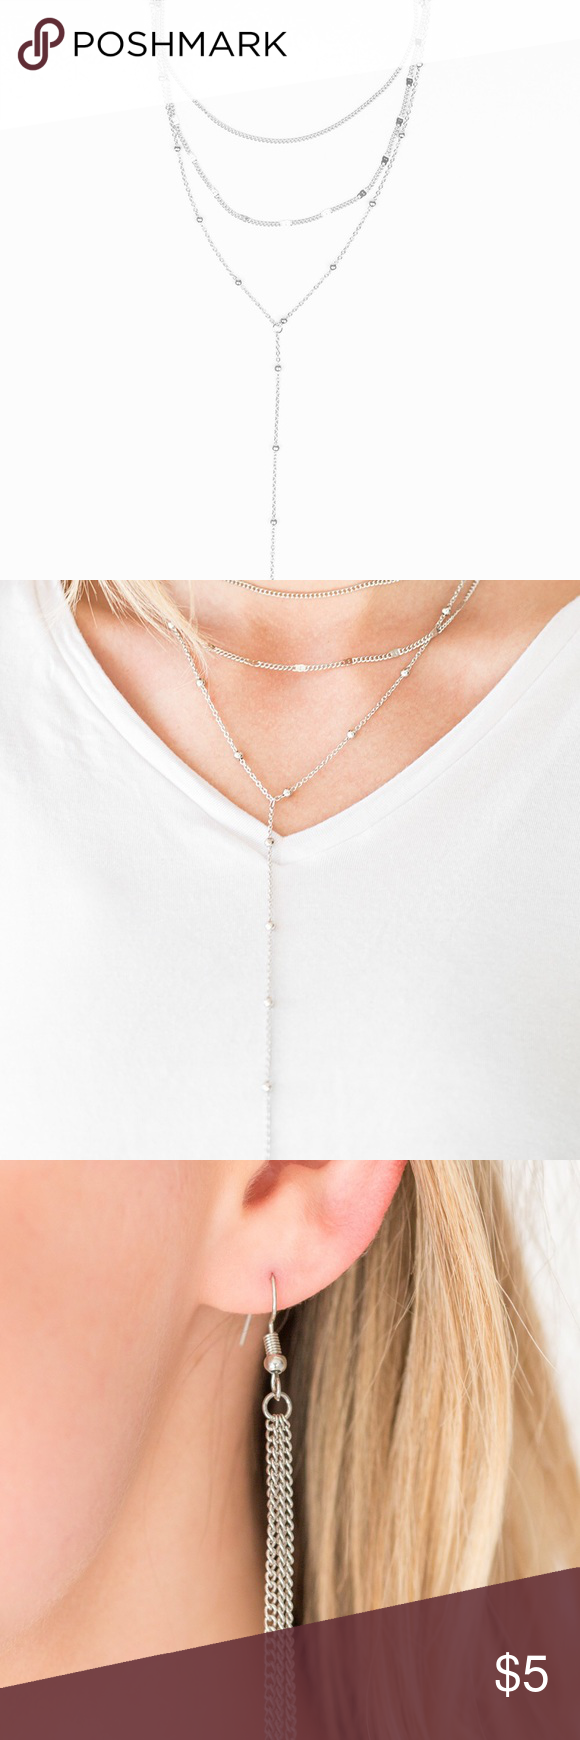 Paparazzi Think Like A Minimalist Silver Necklace A Row Of Beaded Silver Chain A Plain Silv Minimalist Necklace Silver Silver Necklace Womens Jewelry Necklace